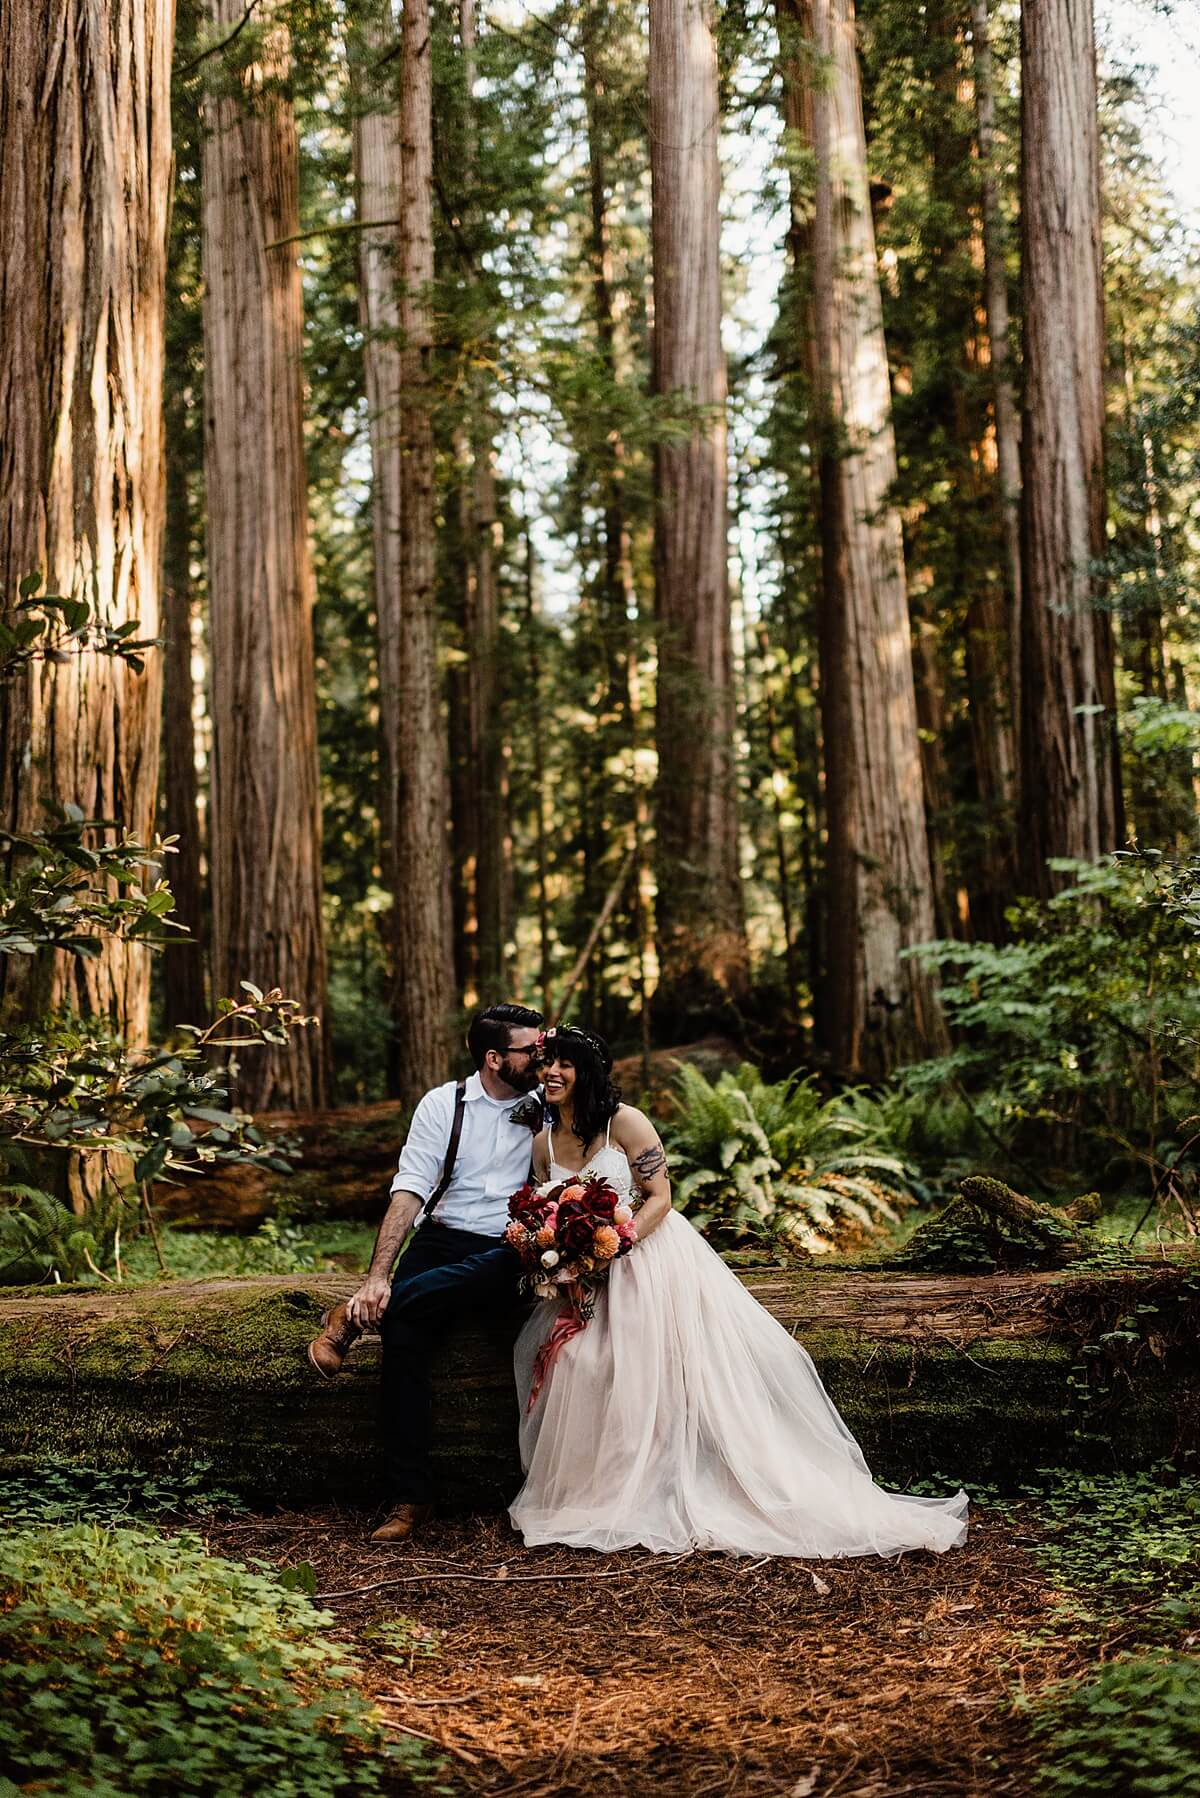 Allison-Brooks-Jedediah-Smiith-Redwoods-Adventure-Elopement-Wedding-S-Photography-Blog_0046.jpg